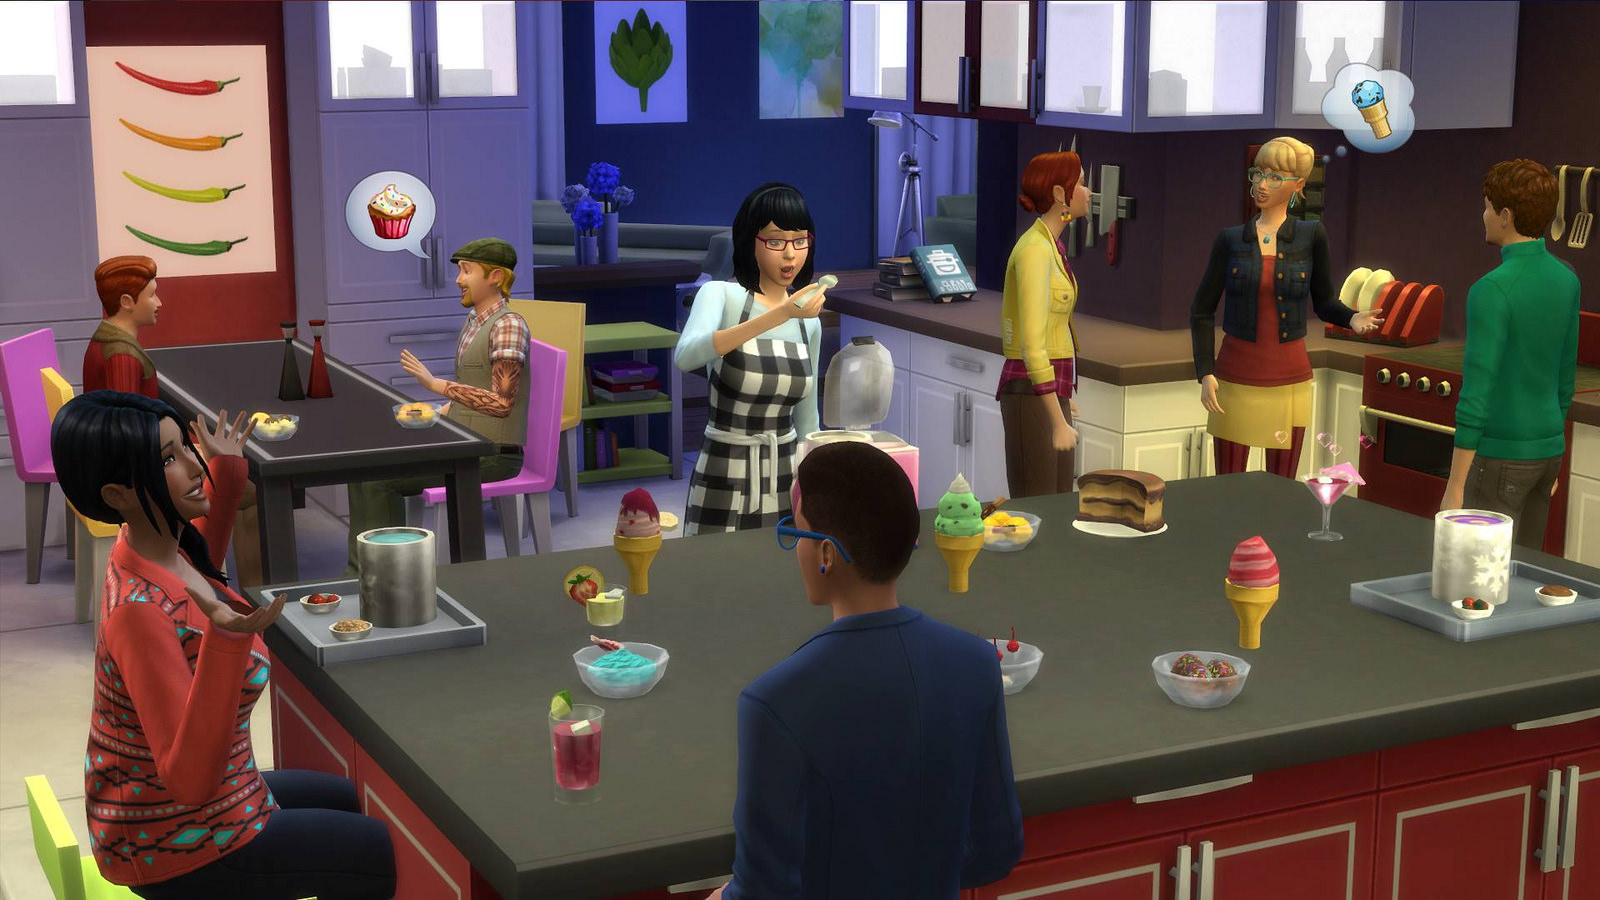 The Sims 4 Cucina Perfetta Stuff Pack